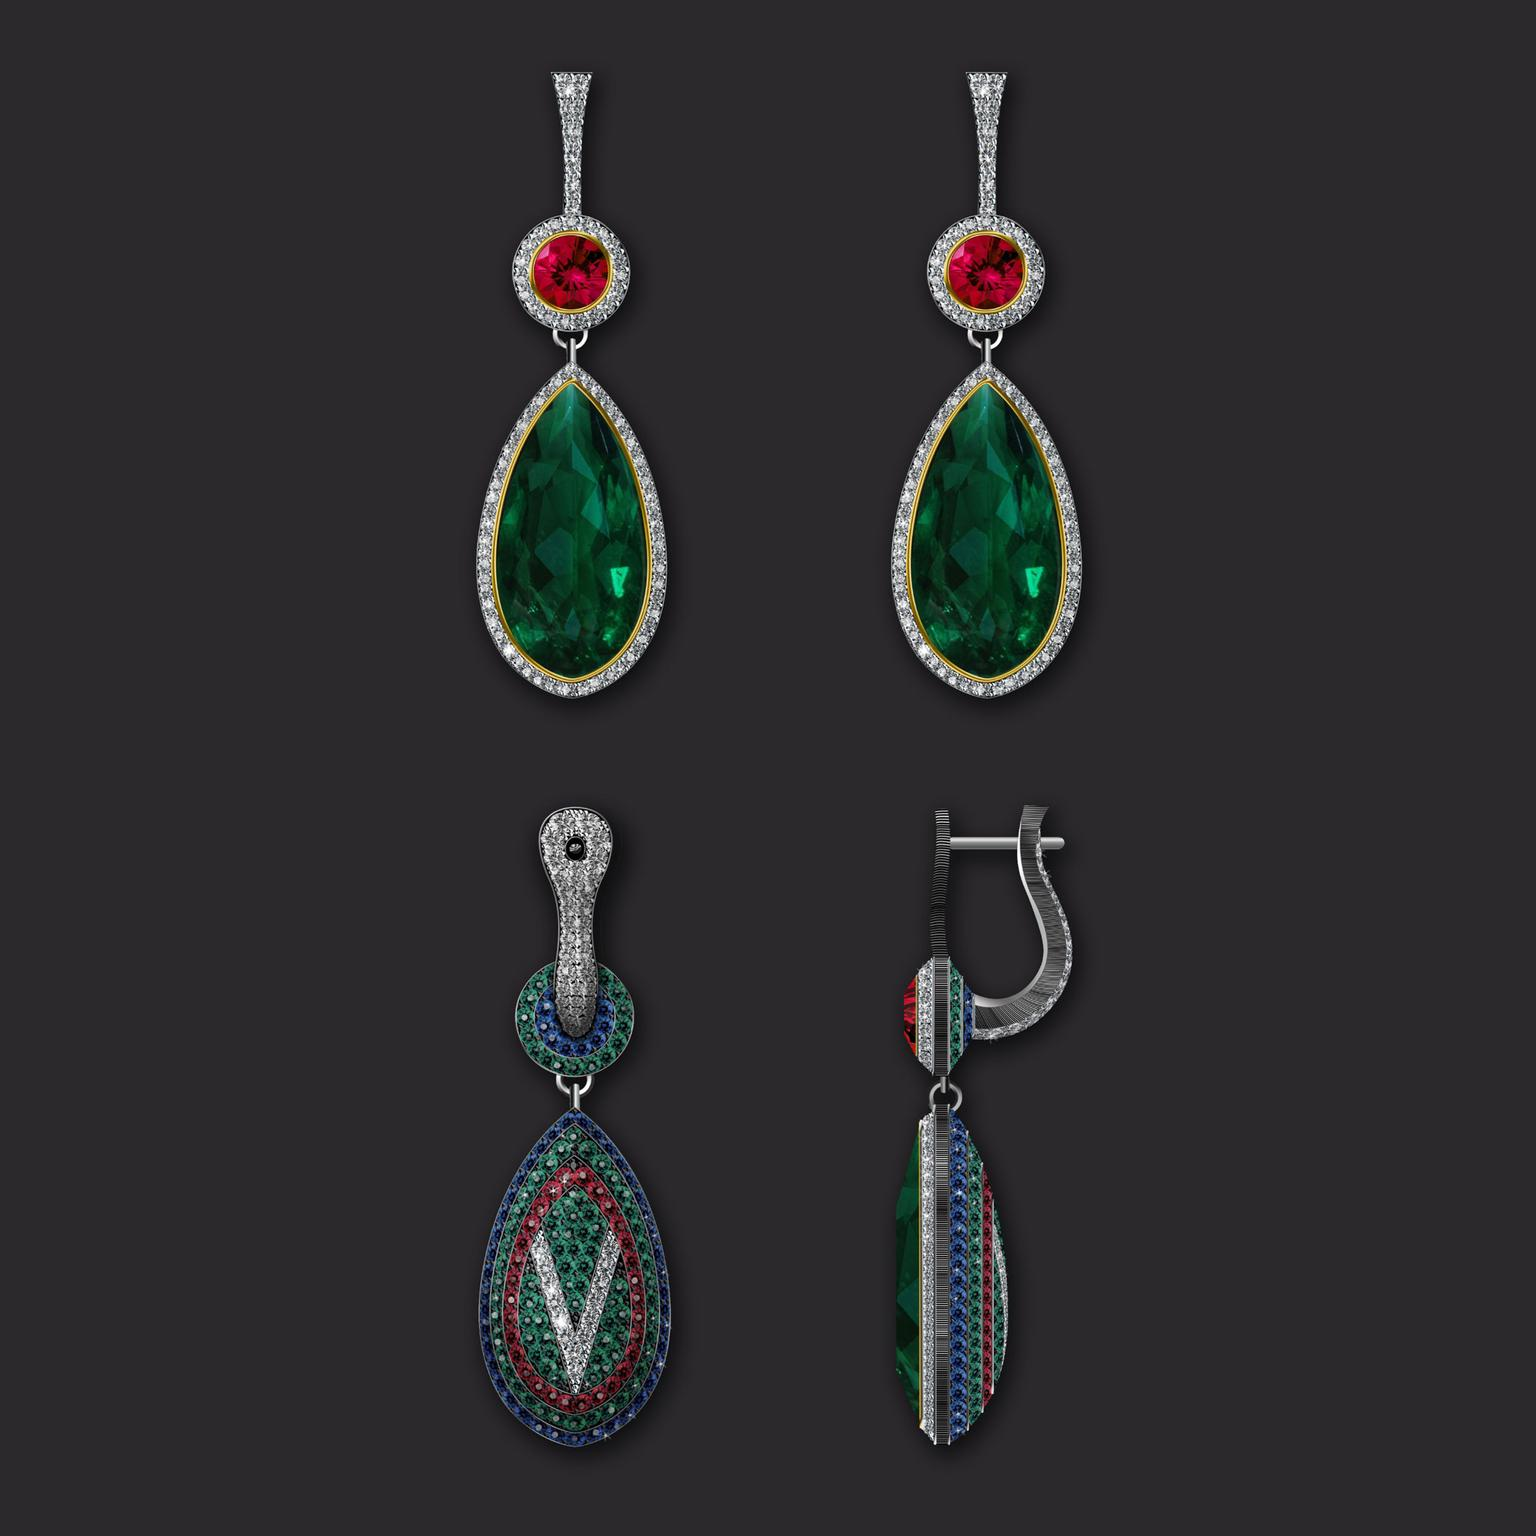 Maxim V egg pendant with Zambian emerald and diamond pave